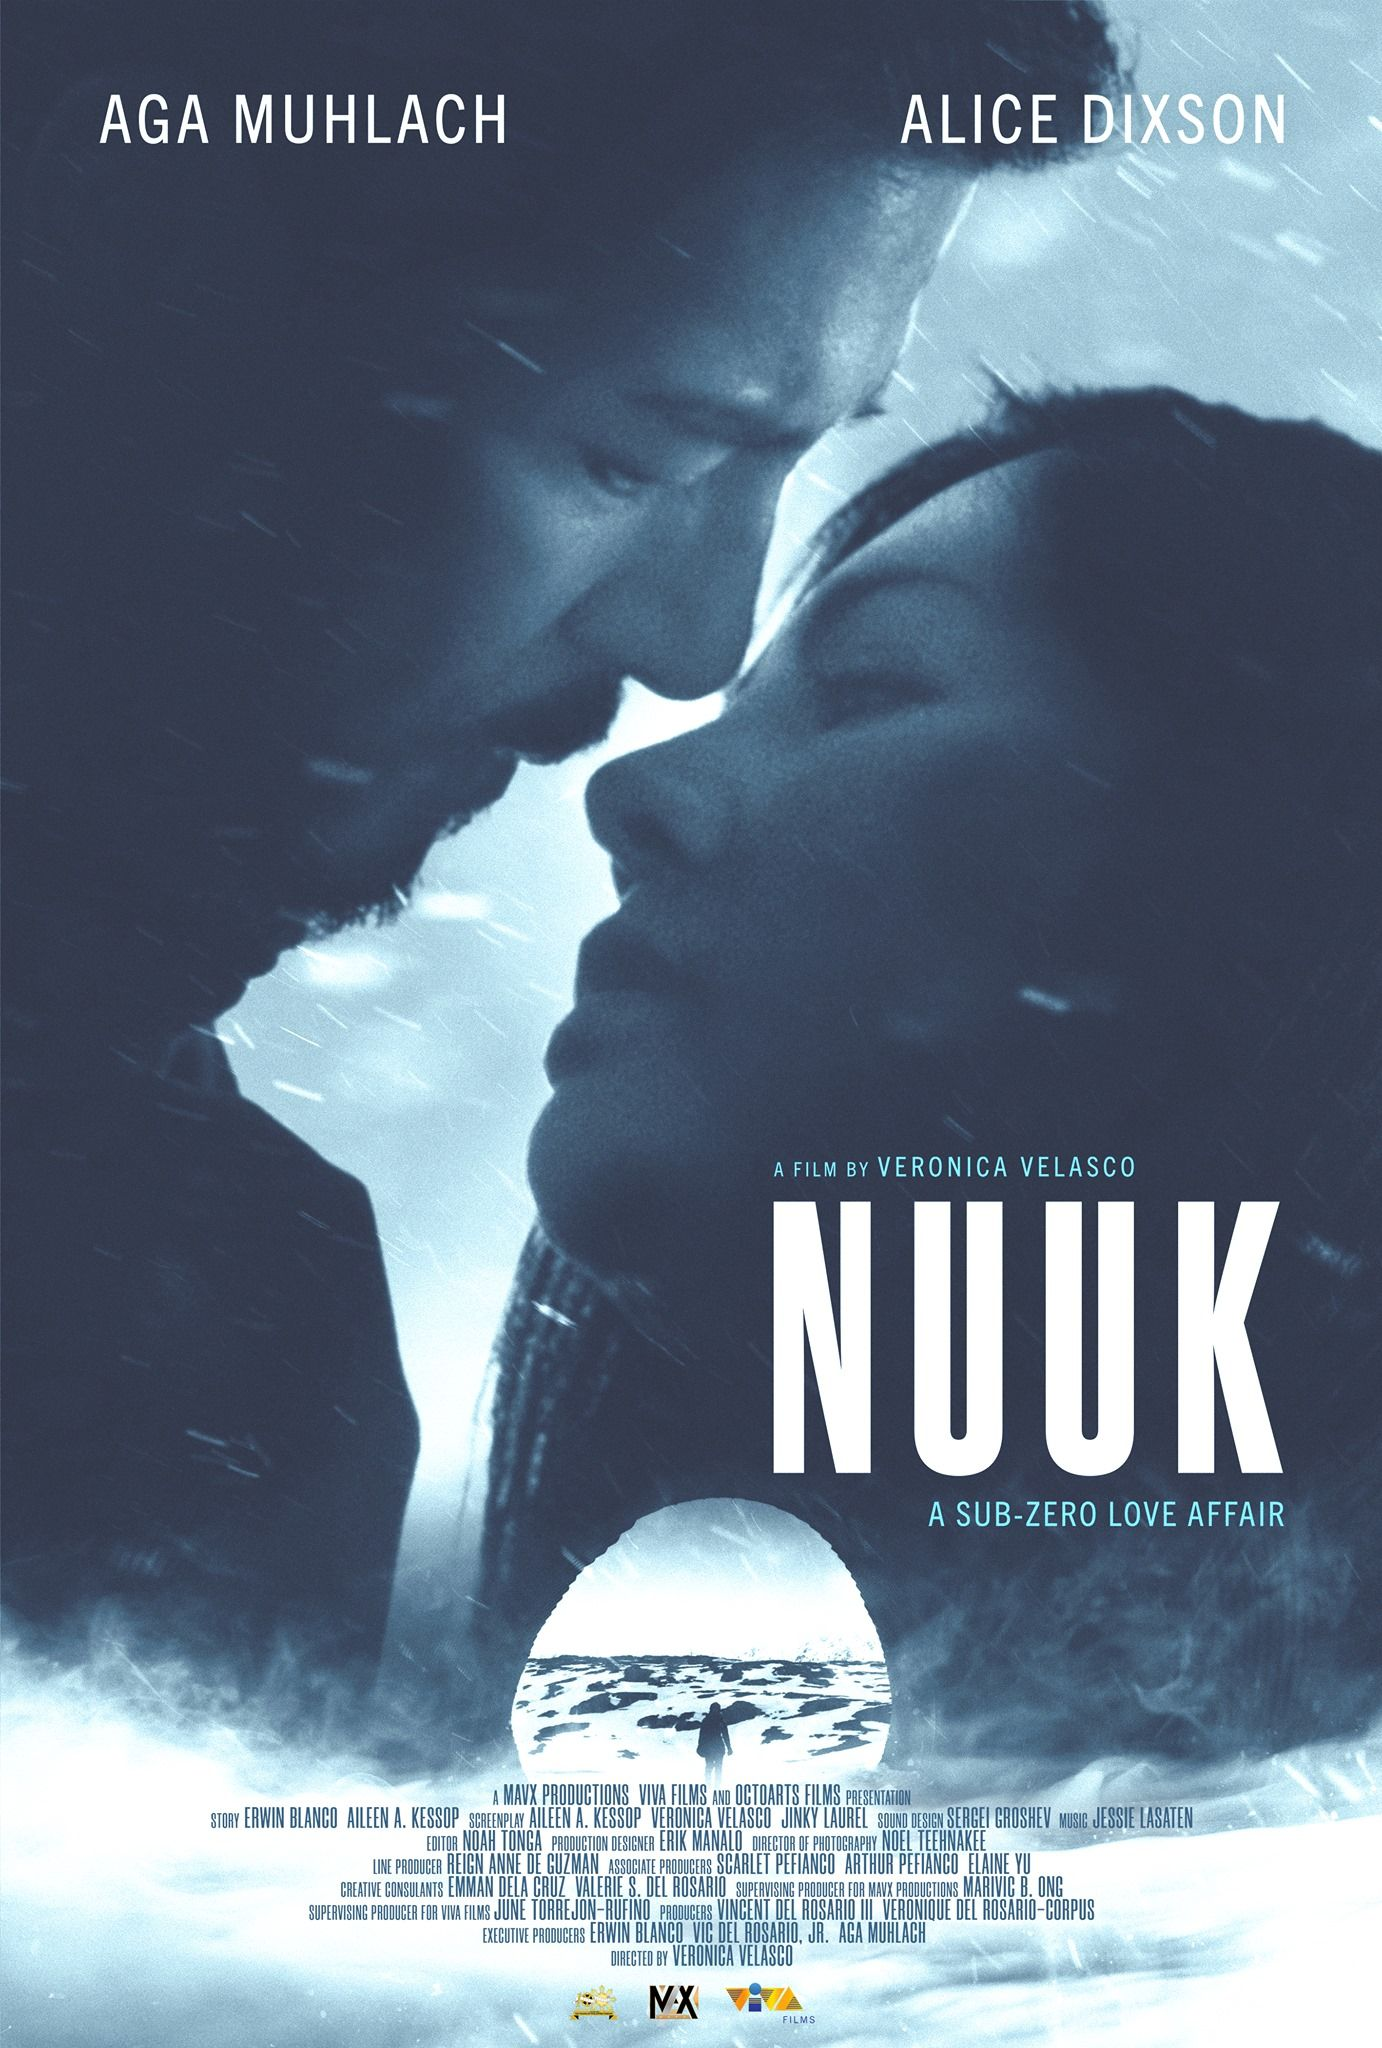 Nuuk 2019 Full Movies Nuuk Streaming Movies Online